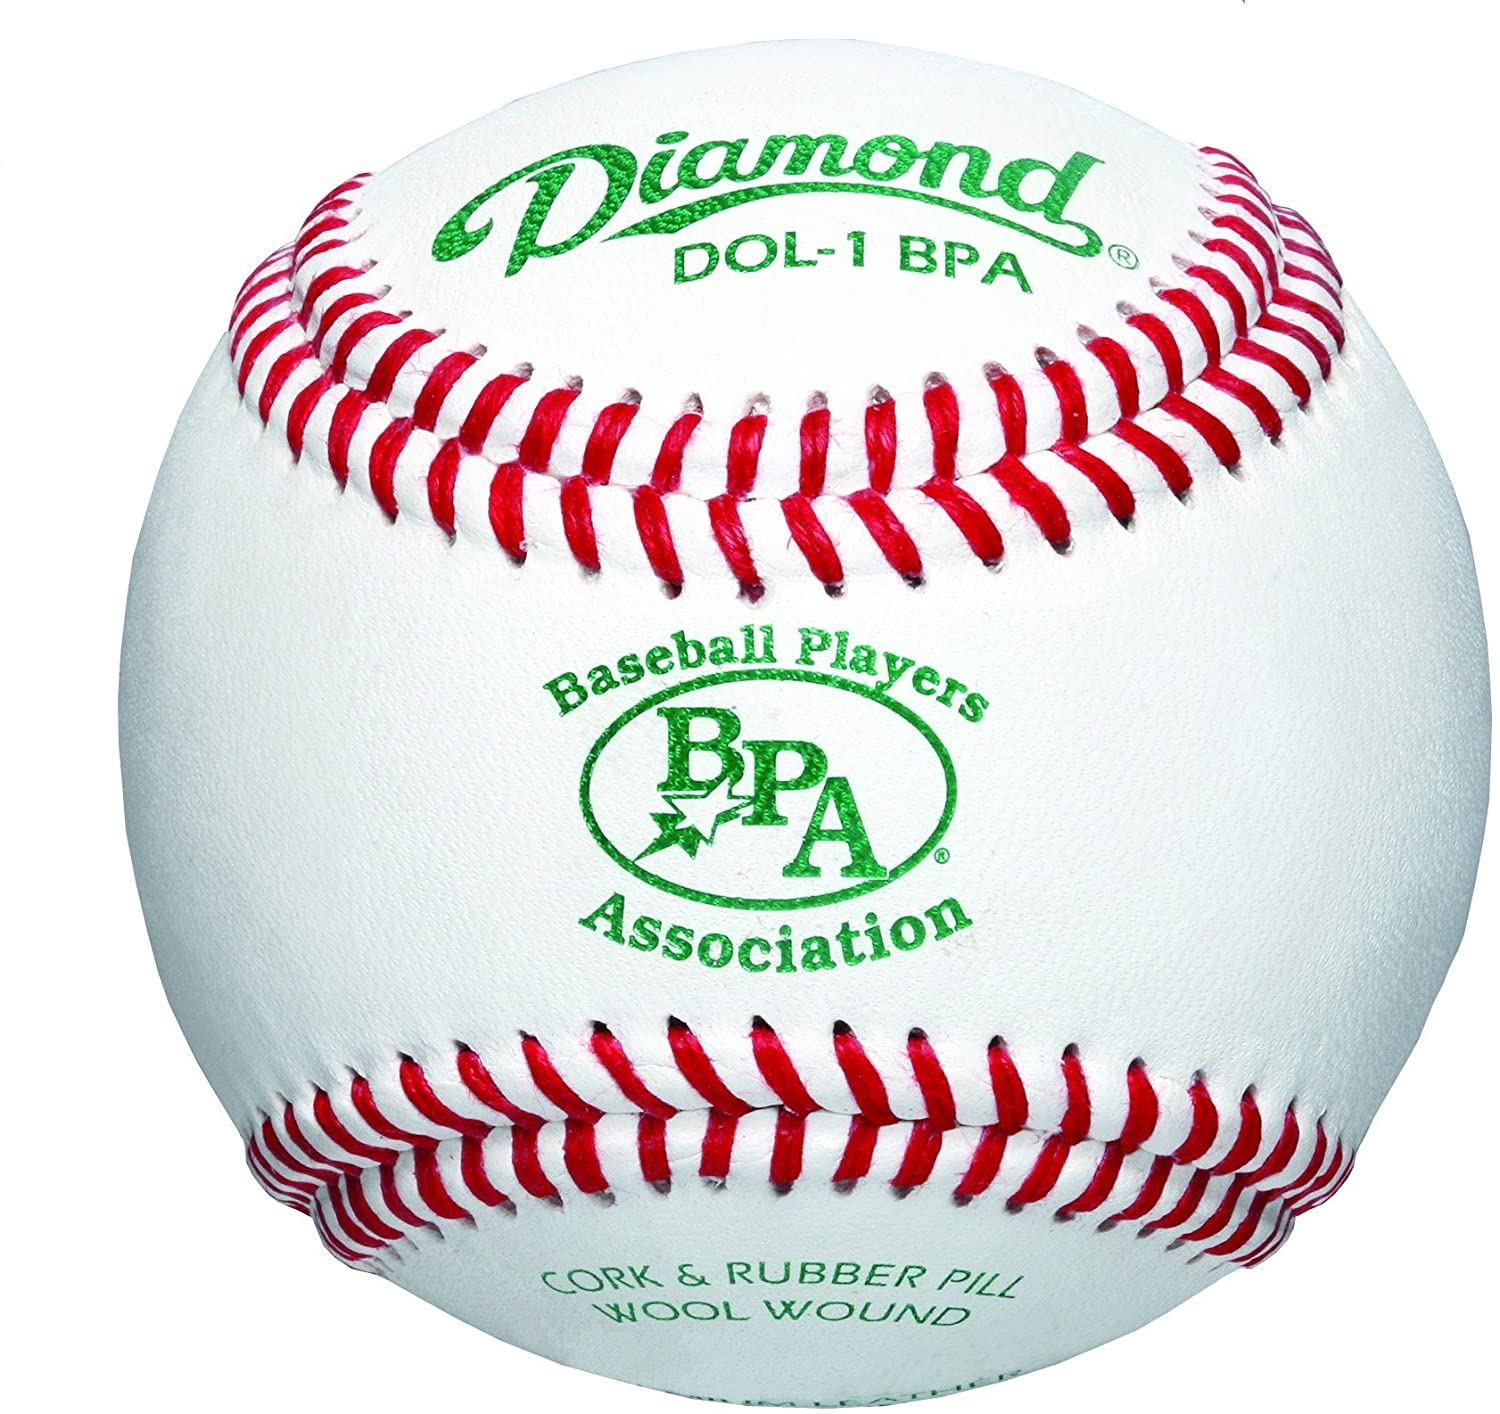 diamond-baseball-players-association-select-wool-blend-winding-baseball-1-dozen DOL-1-BPA-DOZ Diamond  <p>Select wool blend winding Cork and rubber center Premium leather cover